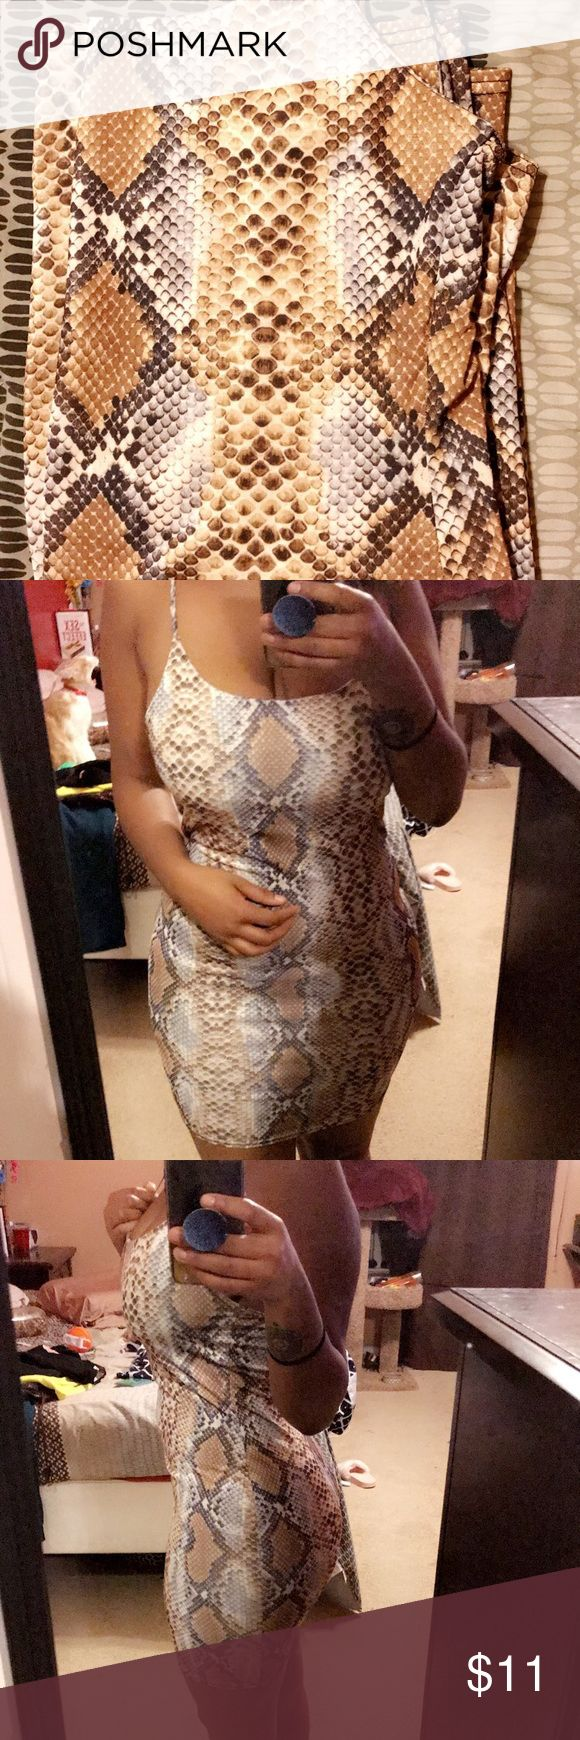 MissGuided Snake Print Dress! MissGuided Snake Print Dress! Size: US 6. Condition: Brand New & Never Worn. Color: Gold & White. Very Cute ❤️ Missguided Dresses Mini